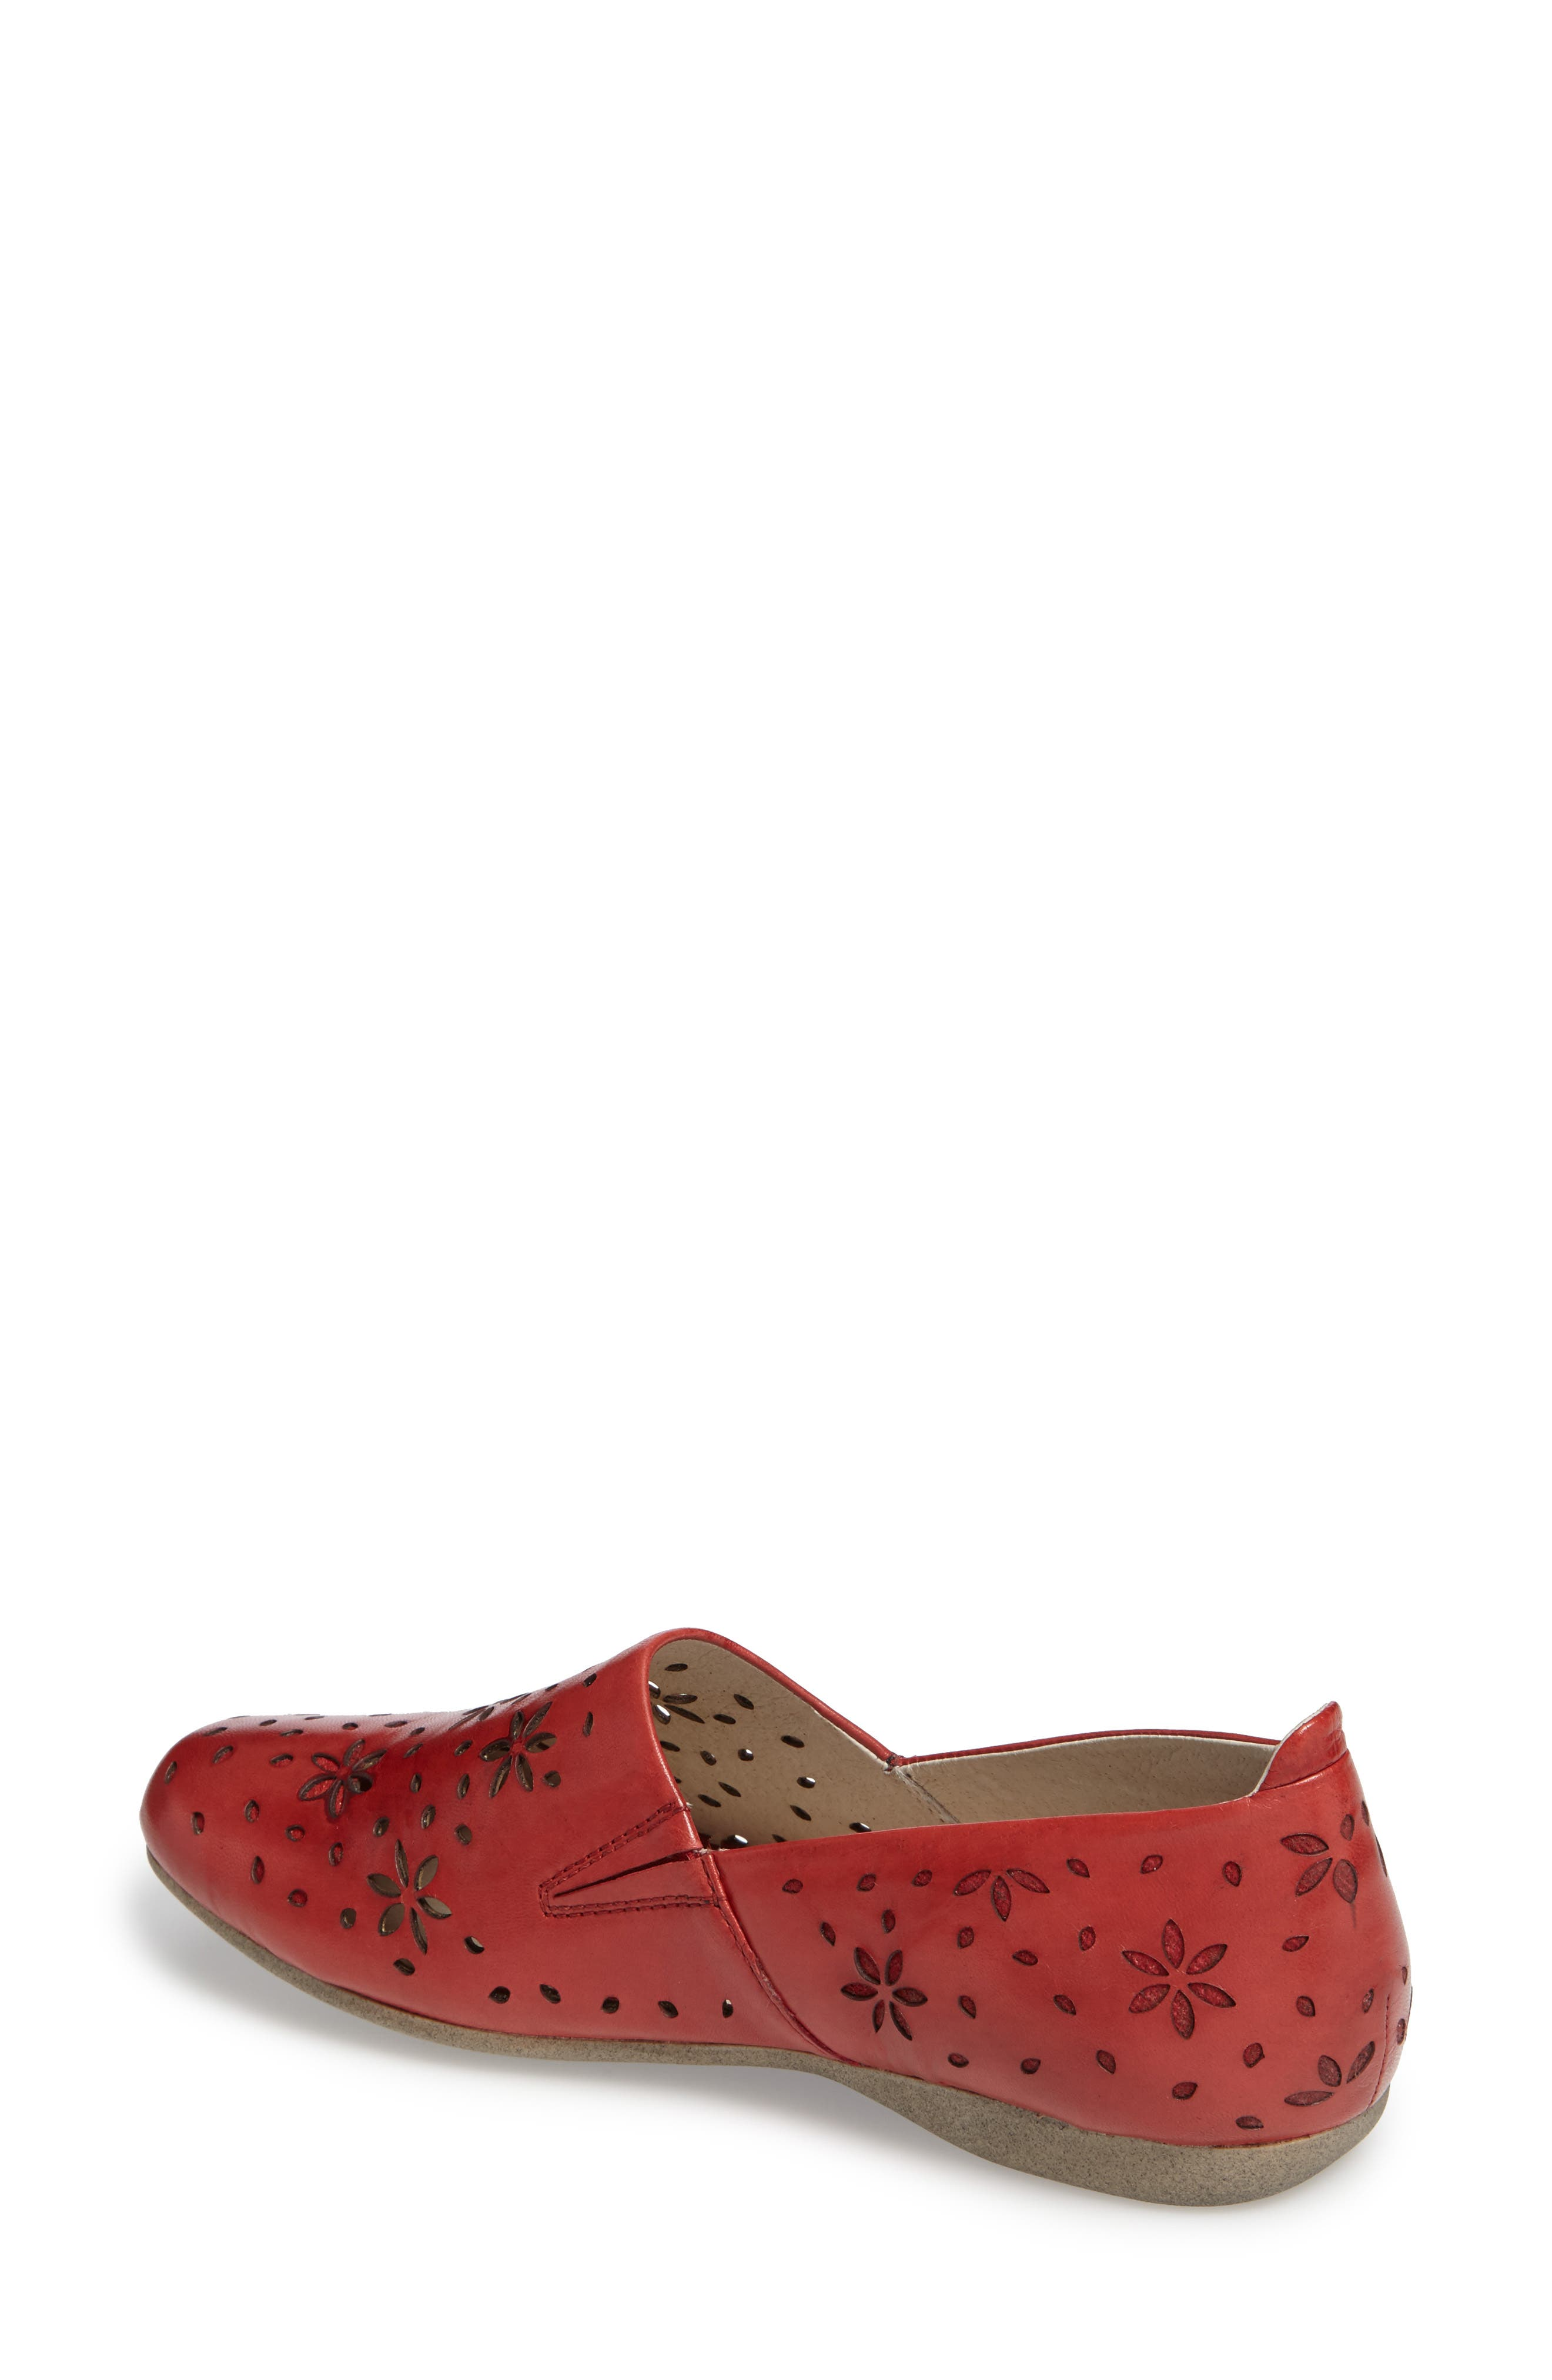 Fiona 31 Perforated Flat,                             Alternate thumbnail 6, color,